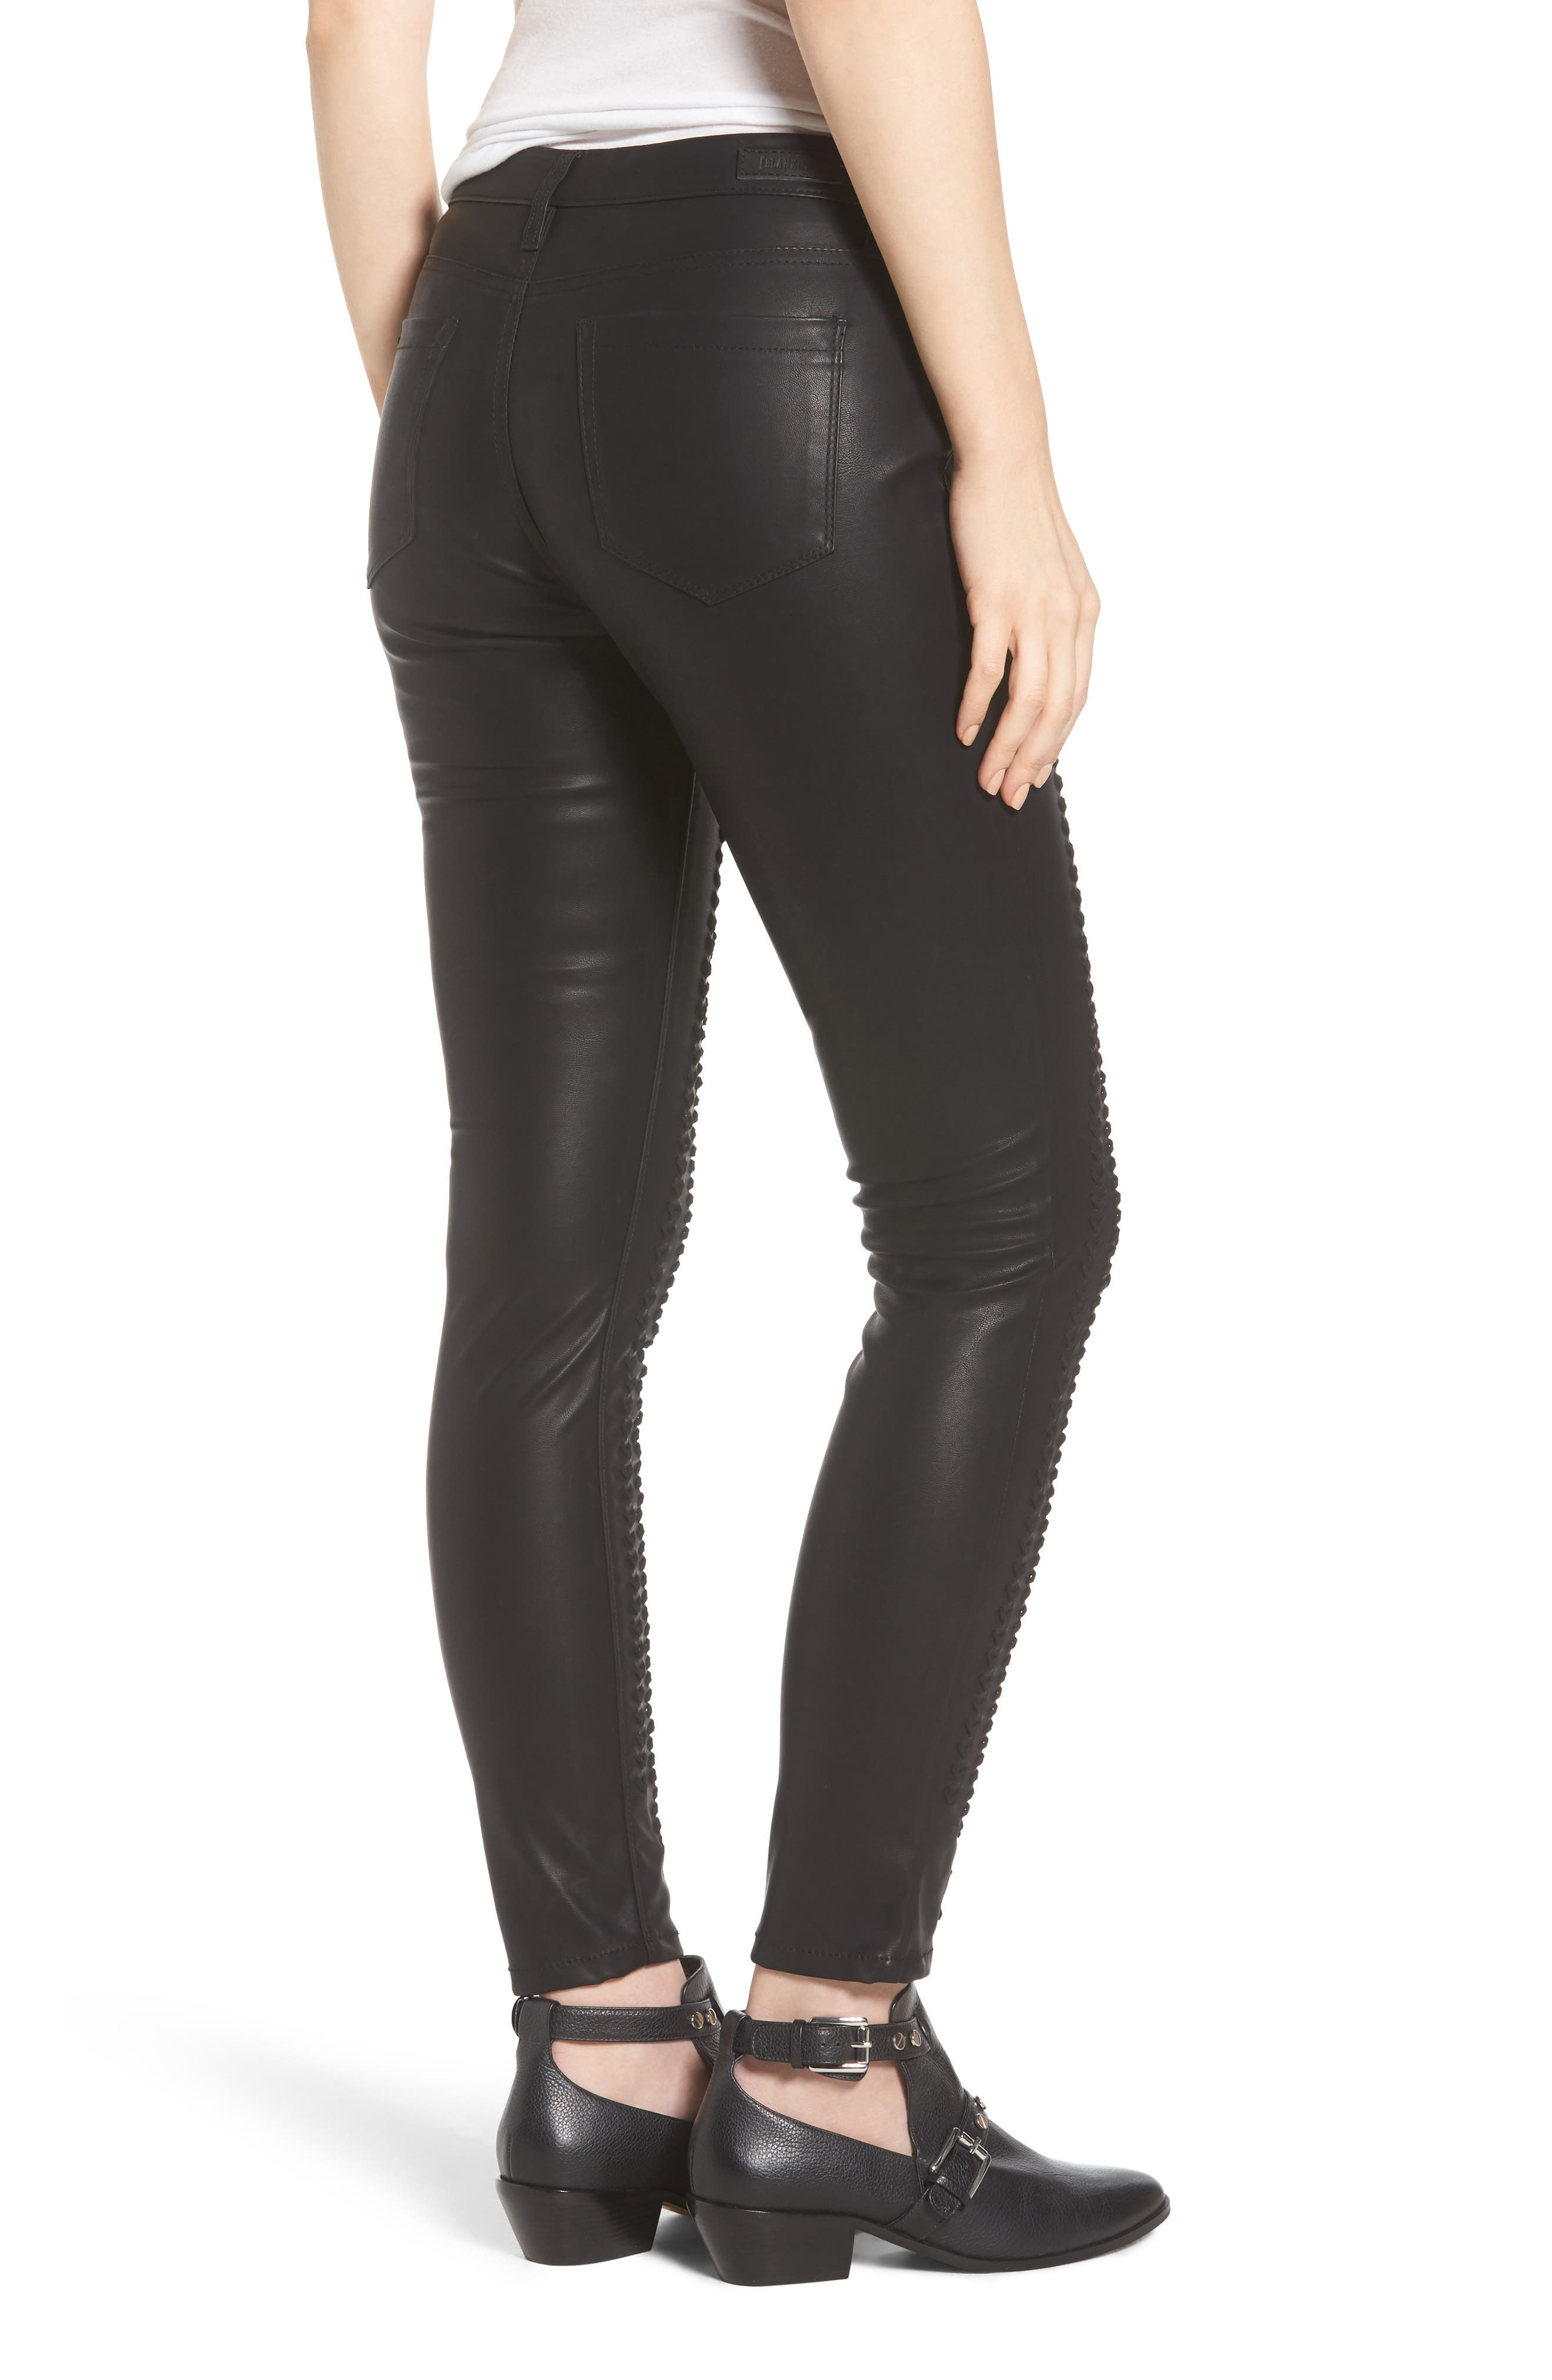 Whipstitch Ankle Skinny Faux Leather Pants,                             Alternate thumbnail 2, color,                             001